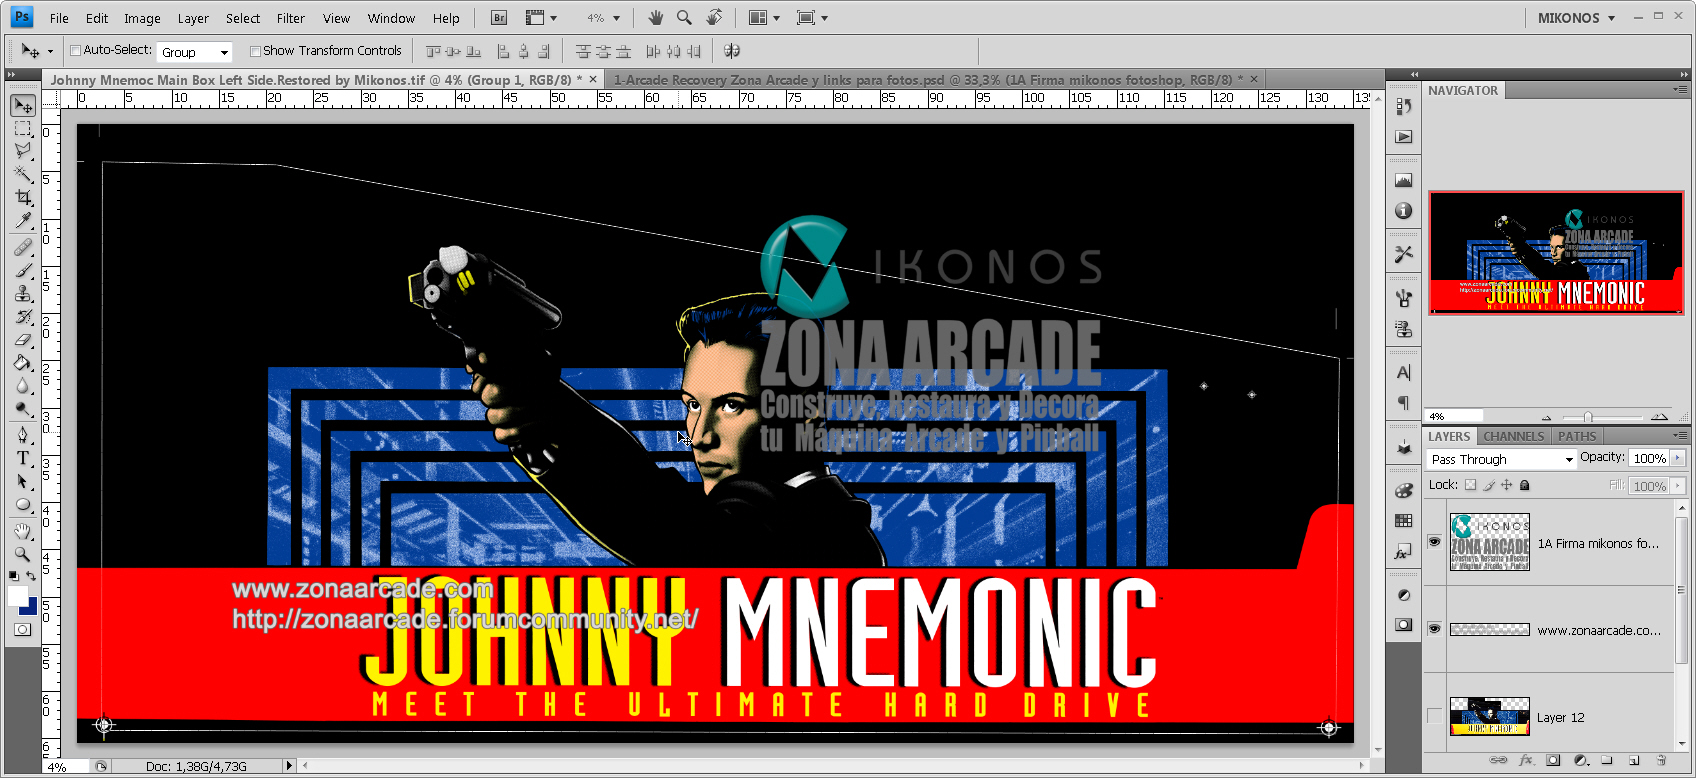 Johnny%20Mnemonic%20Main%20Side%20Left%20display1.jpg